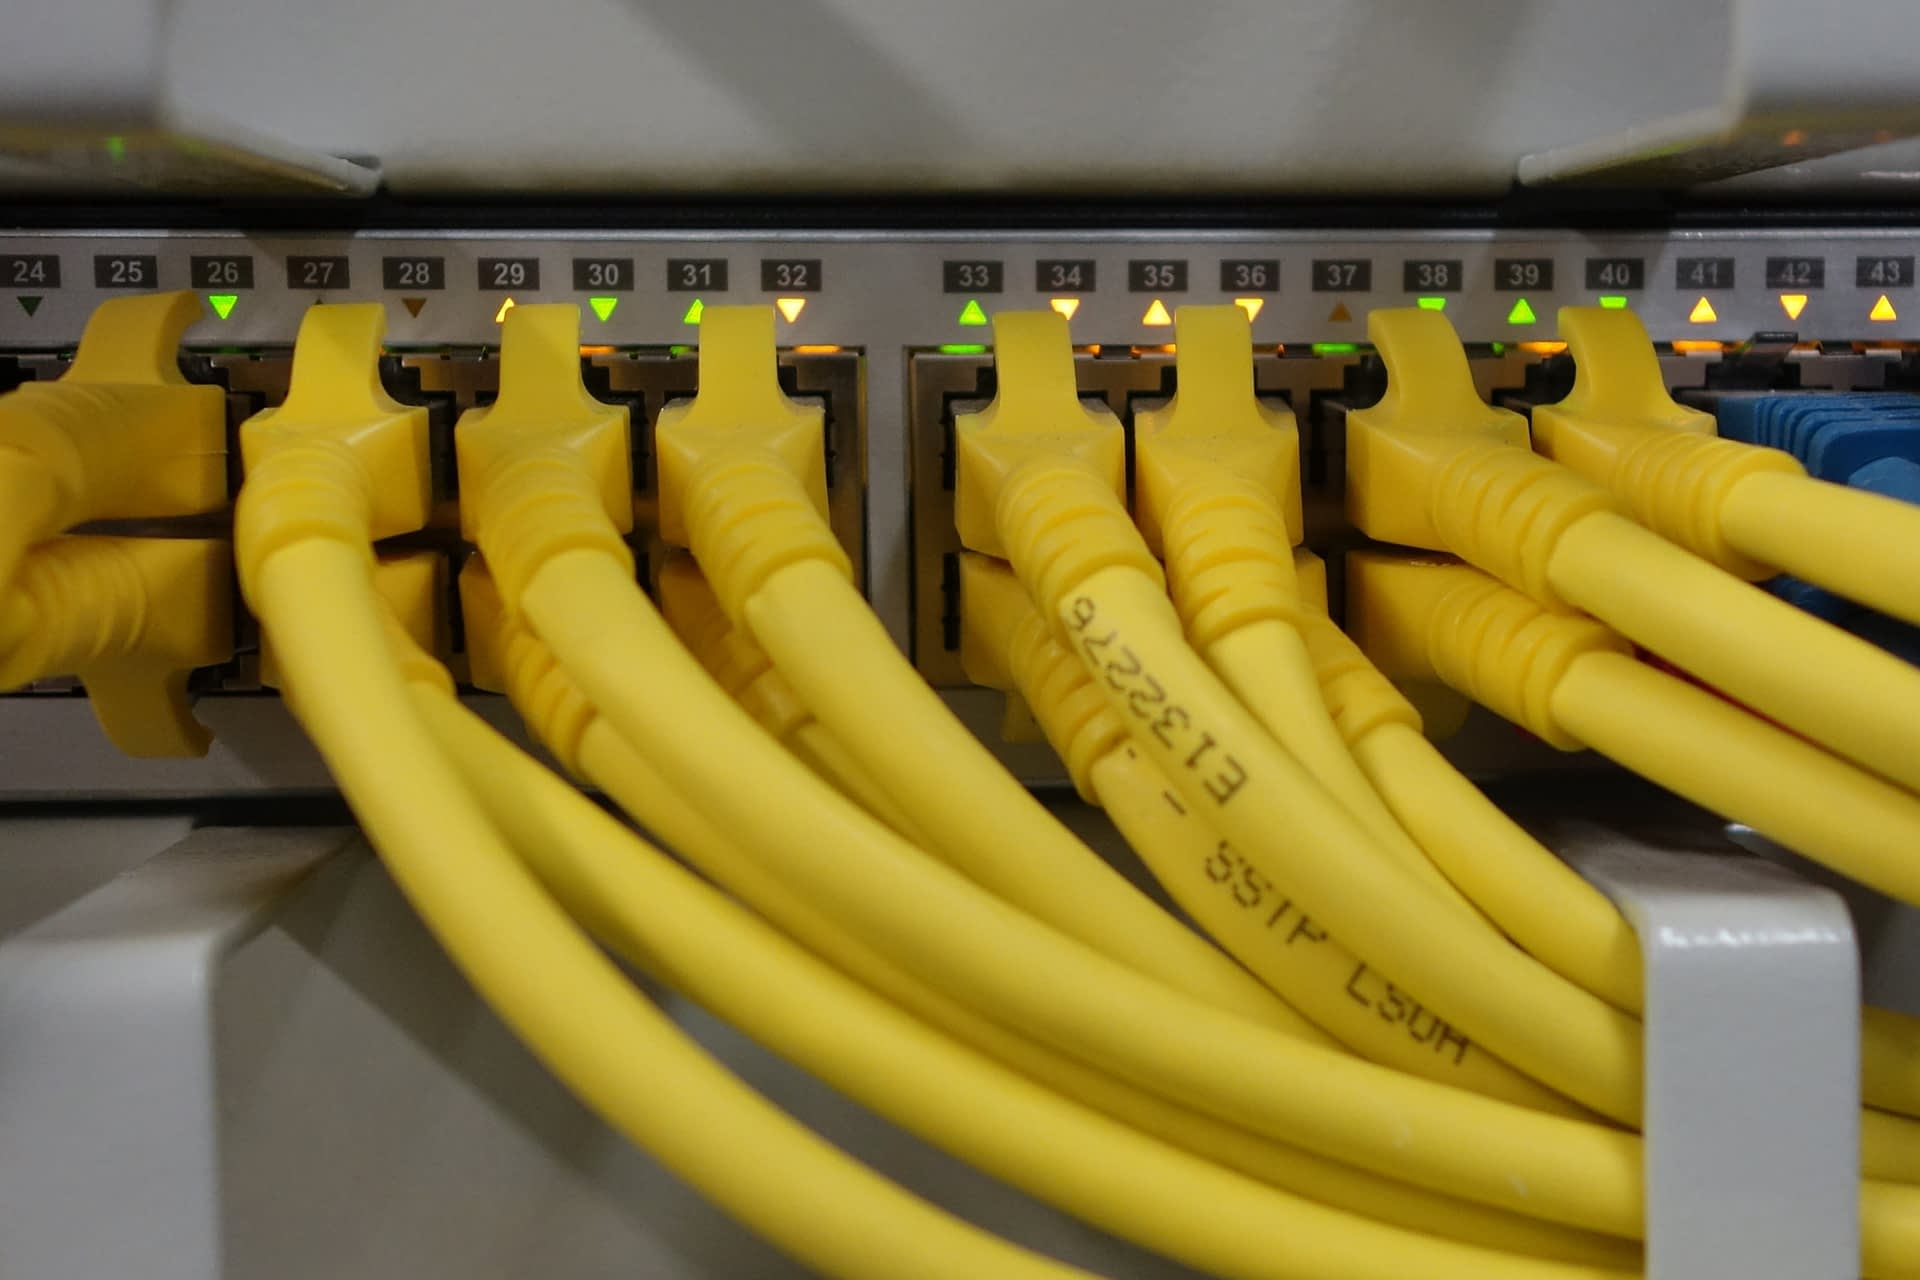 computer-technology-cable-internet-line-food-779821-pxhere.com